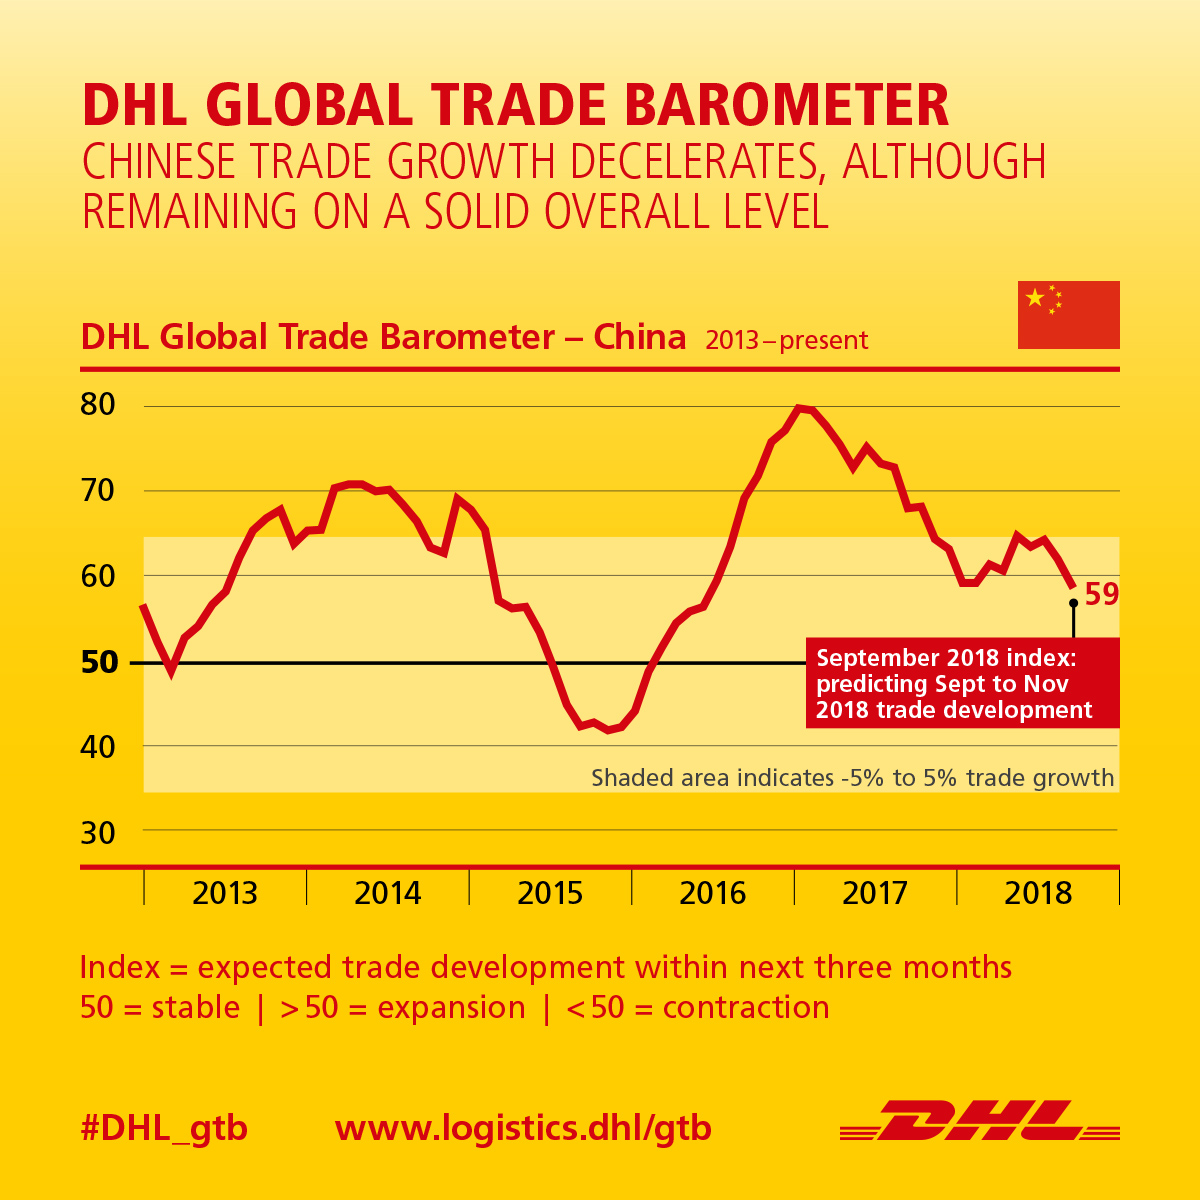 China's transitioning economy resilient to trade problems: DHL